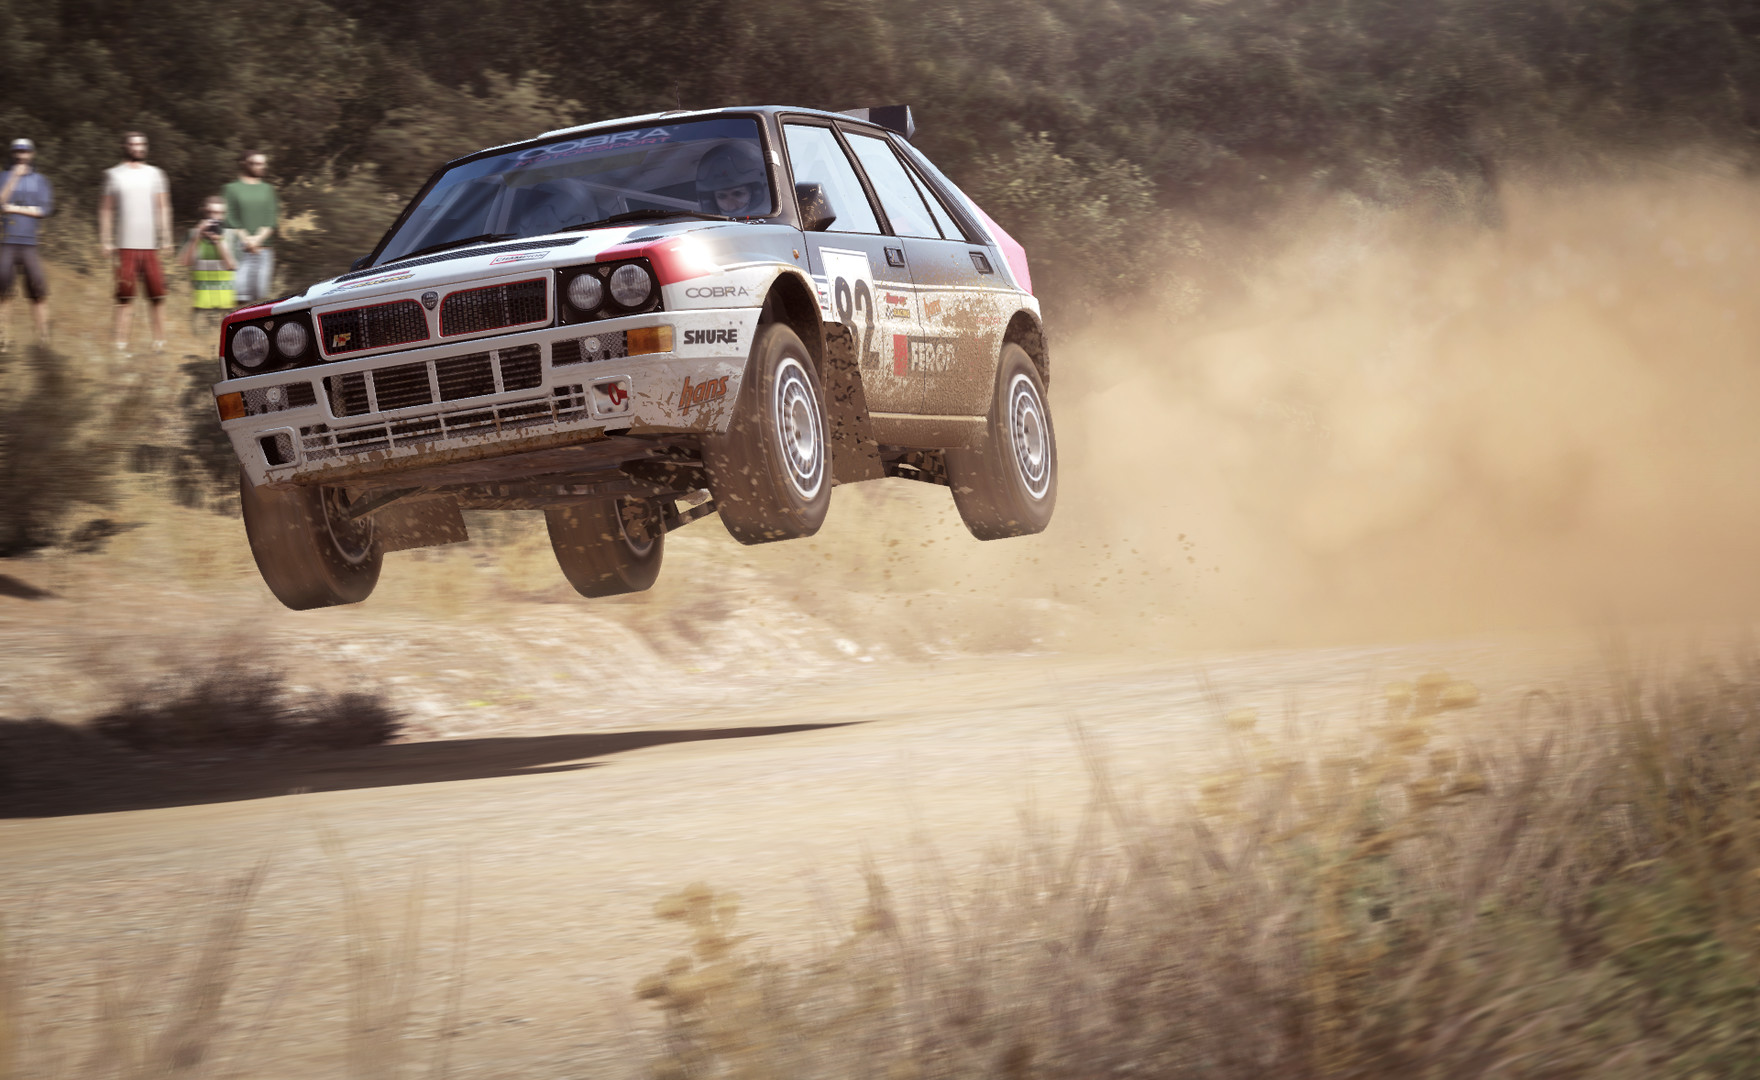 1430565761_ed7bfb86d8517033f0519fe16dfff559.jpg - DiRT Rally